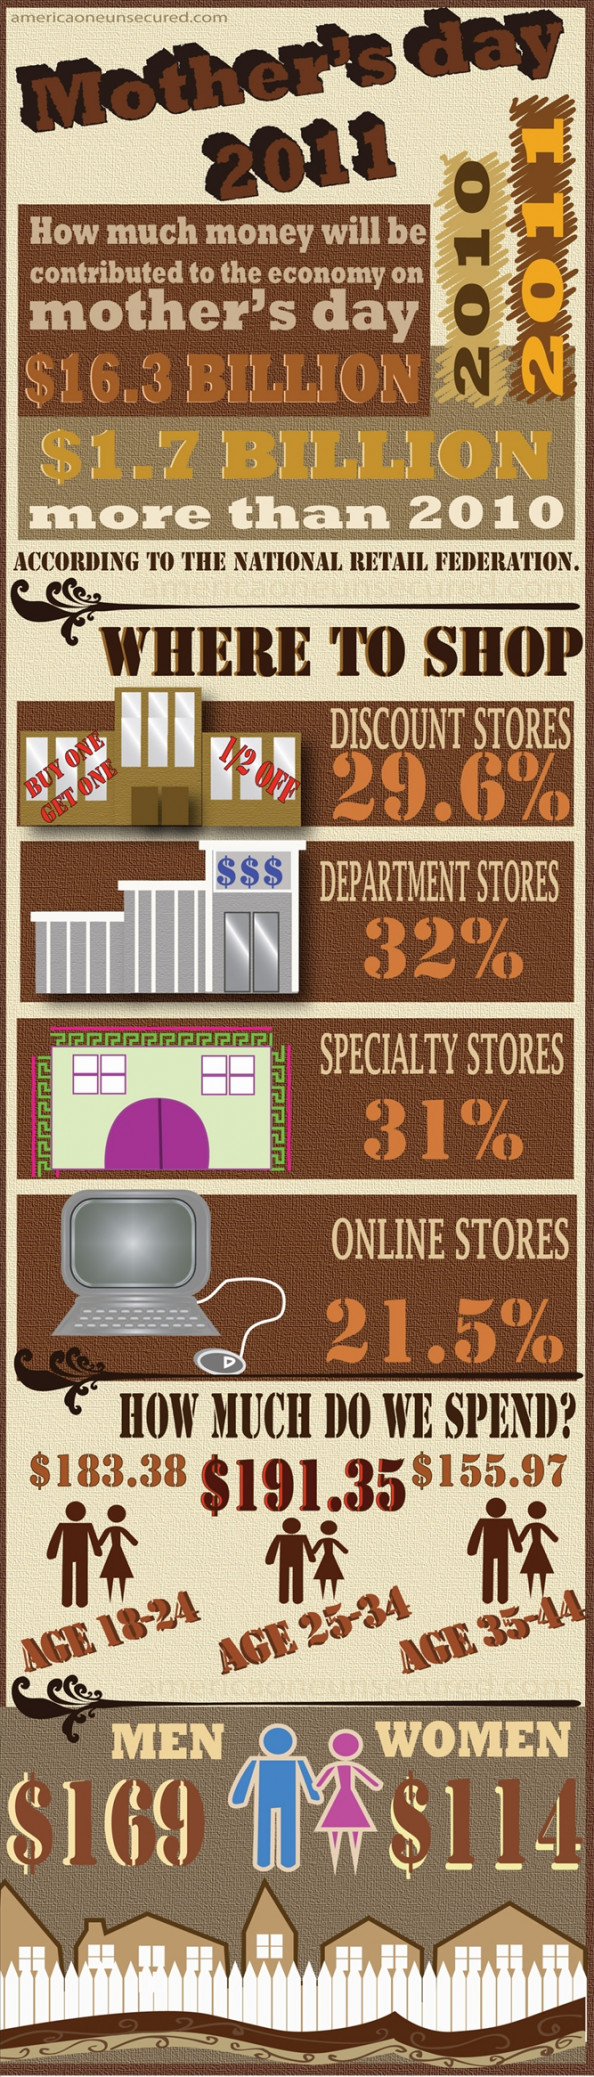 How Much Do We Spend On Mother&#039;s Day? Infographic